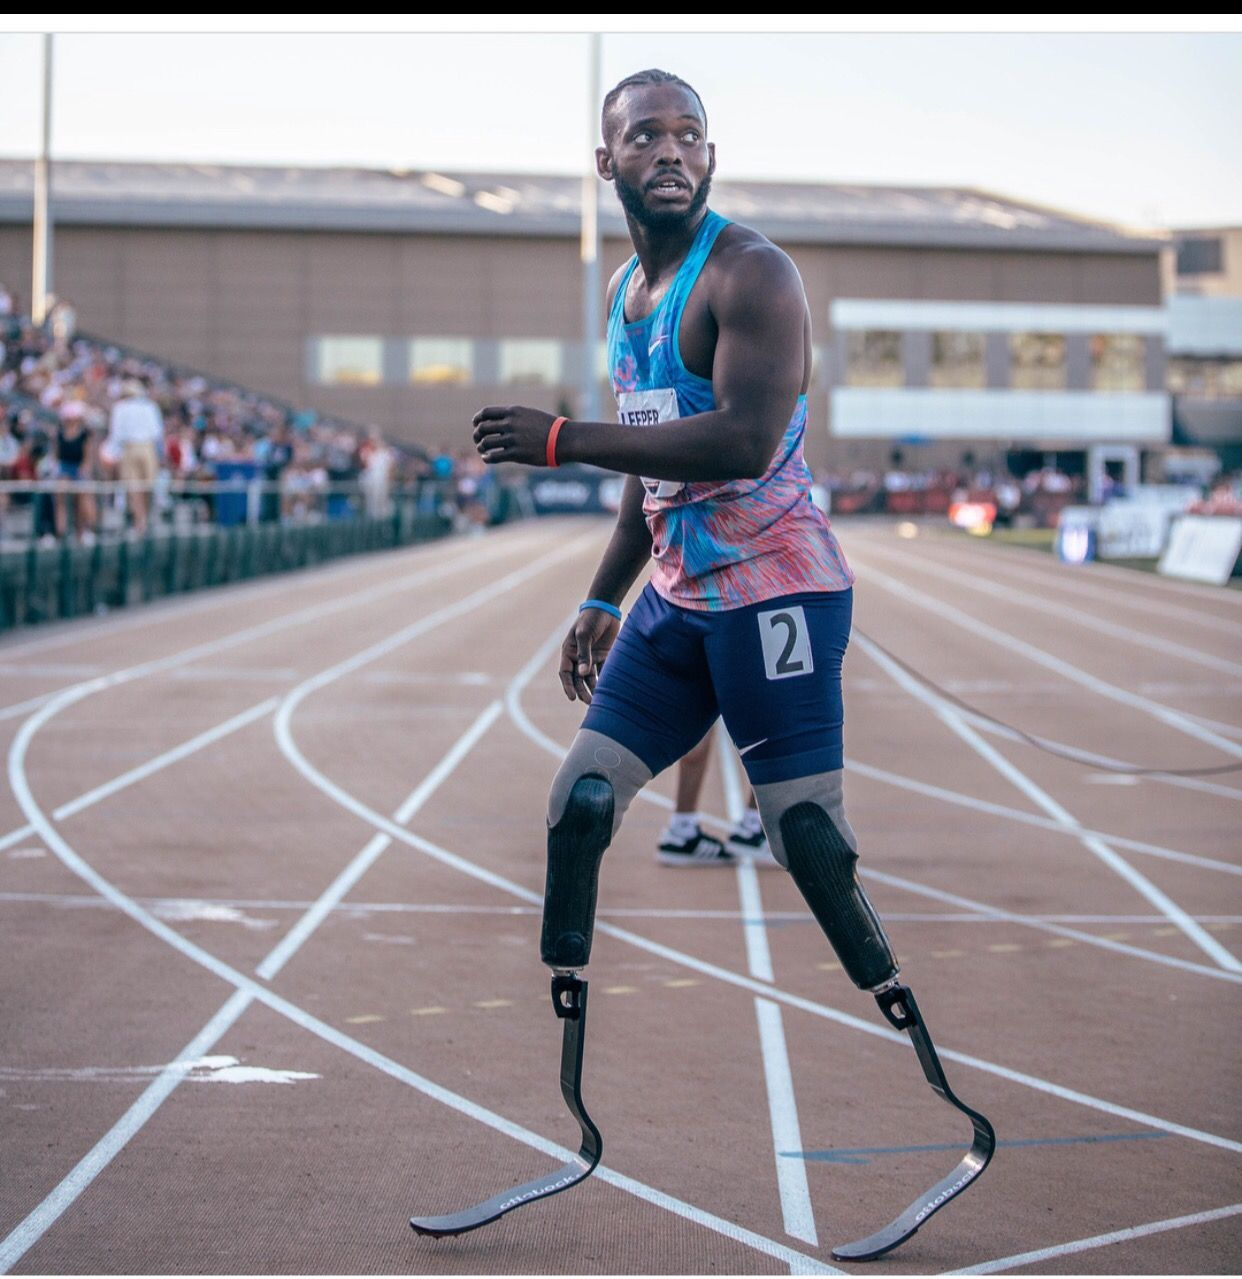 He May Miss the World Championships, but Blake Leeper Will Keep Fighting to Compete